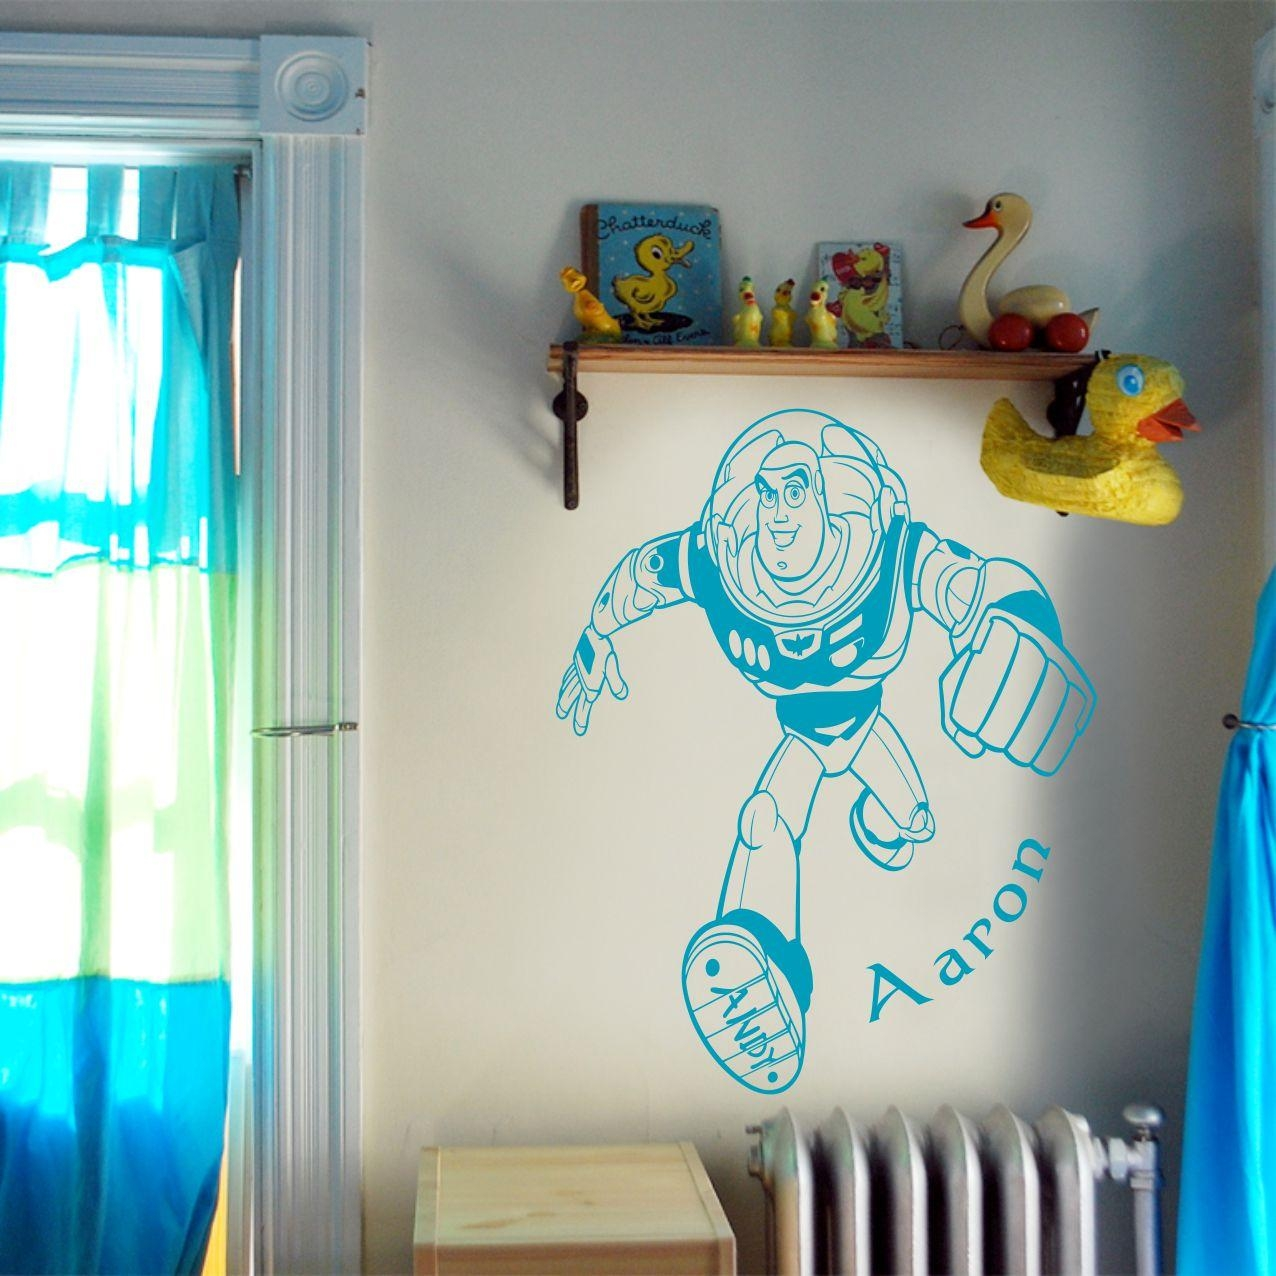 Toy Story Buzz Lightyear Wall Art Decal Vinyl Sticker Wall In Toy Story Wall Stickers (View 11 of 20)